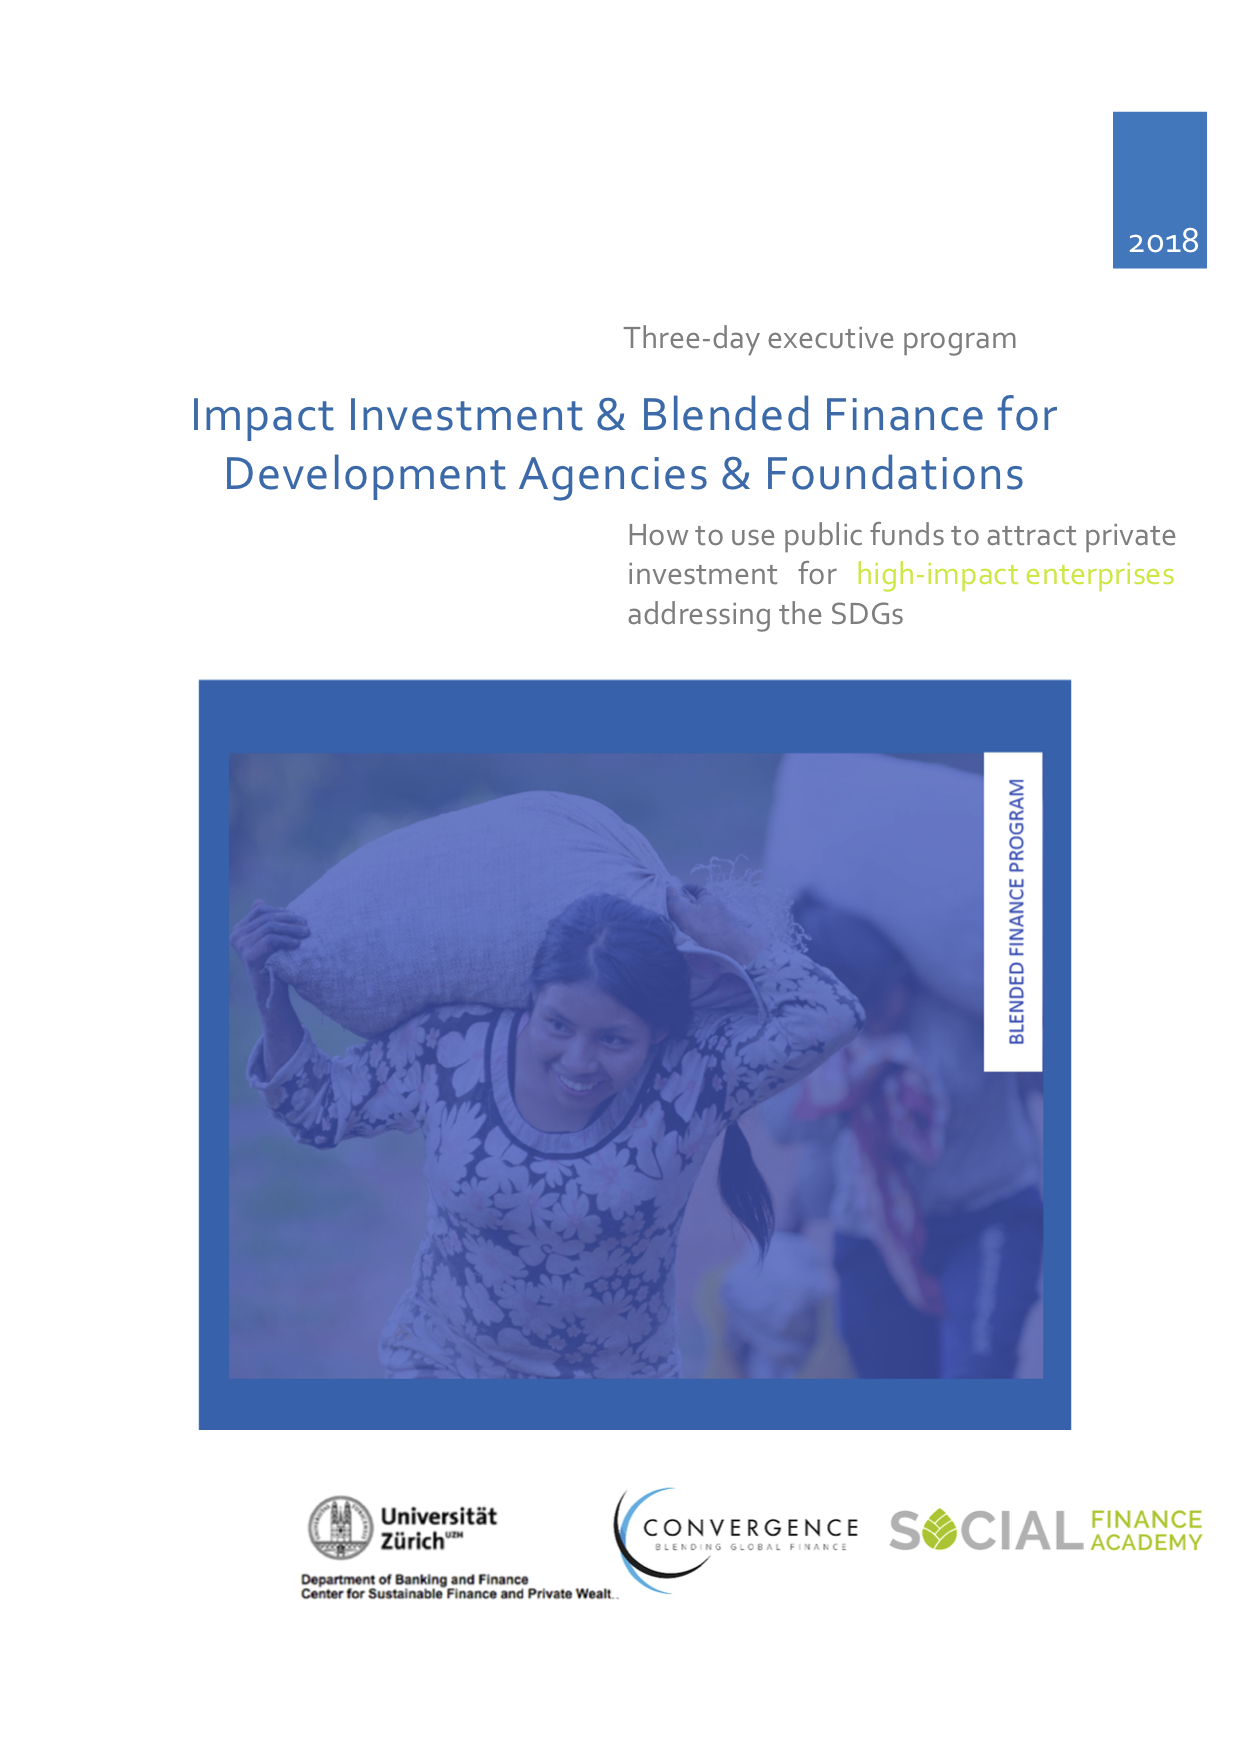 Impact Investment & Blended Finance for Development Agencies & Foundations